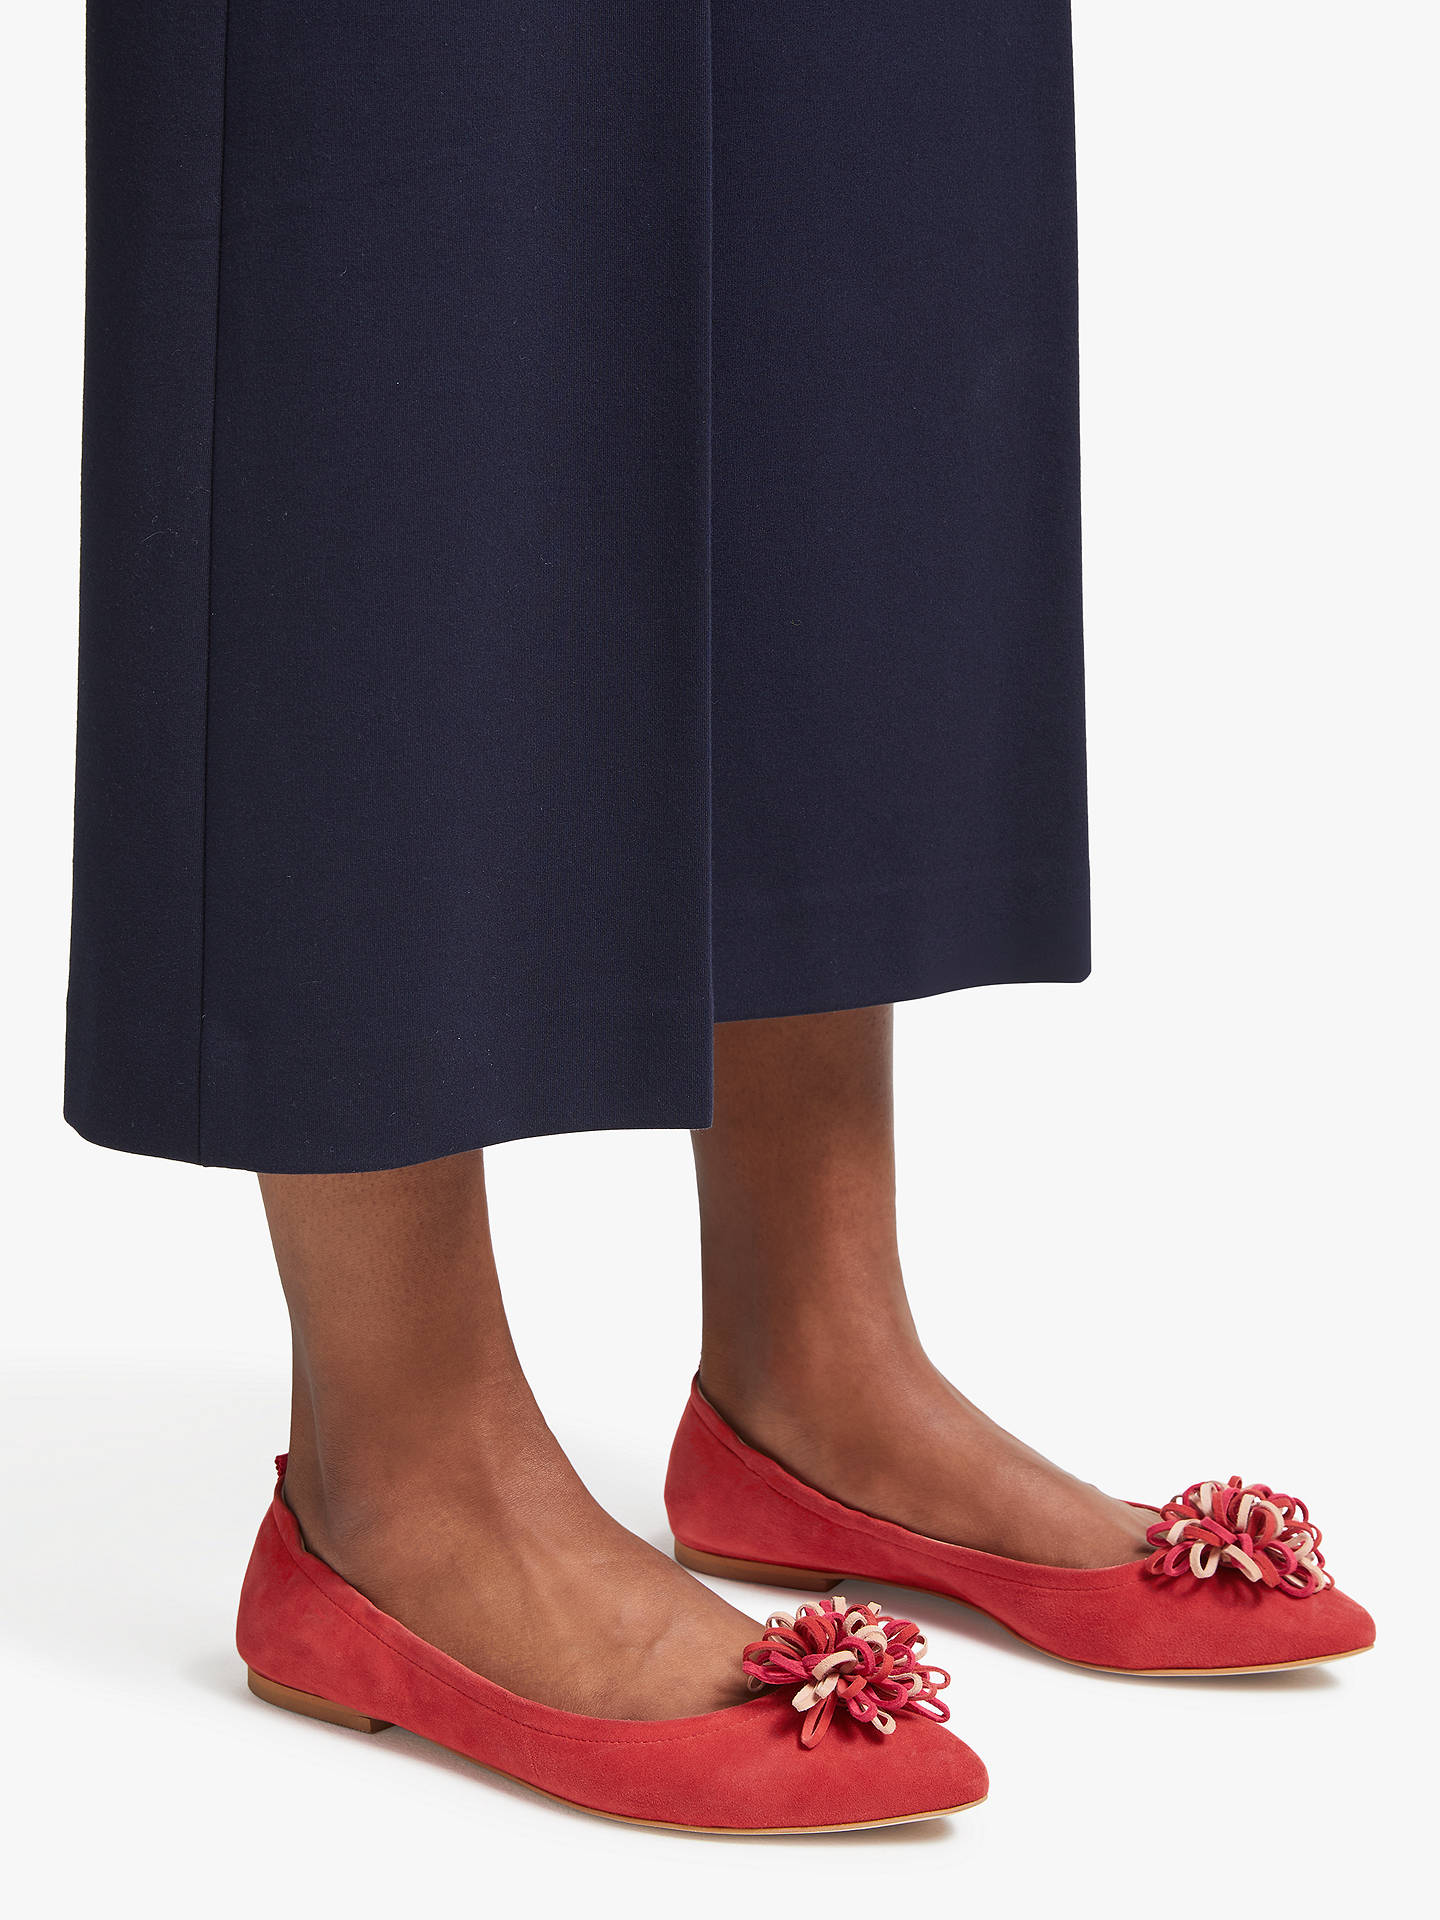 BuyBoden Belle Ballerina Pumps, Post Box Red Suede, 4 Online at johnlewis.com